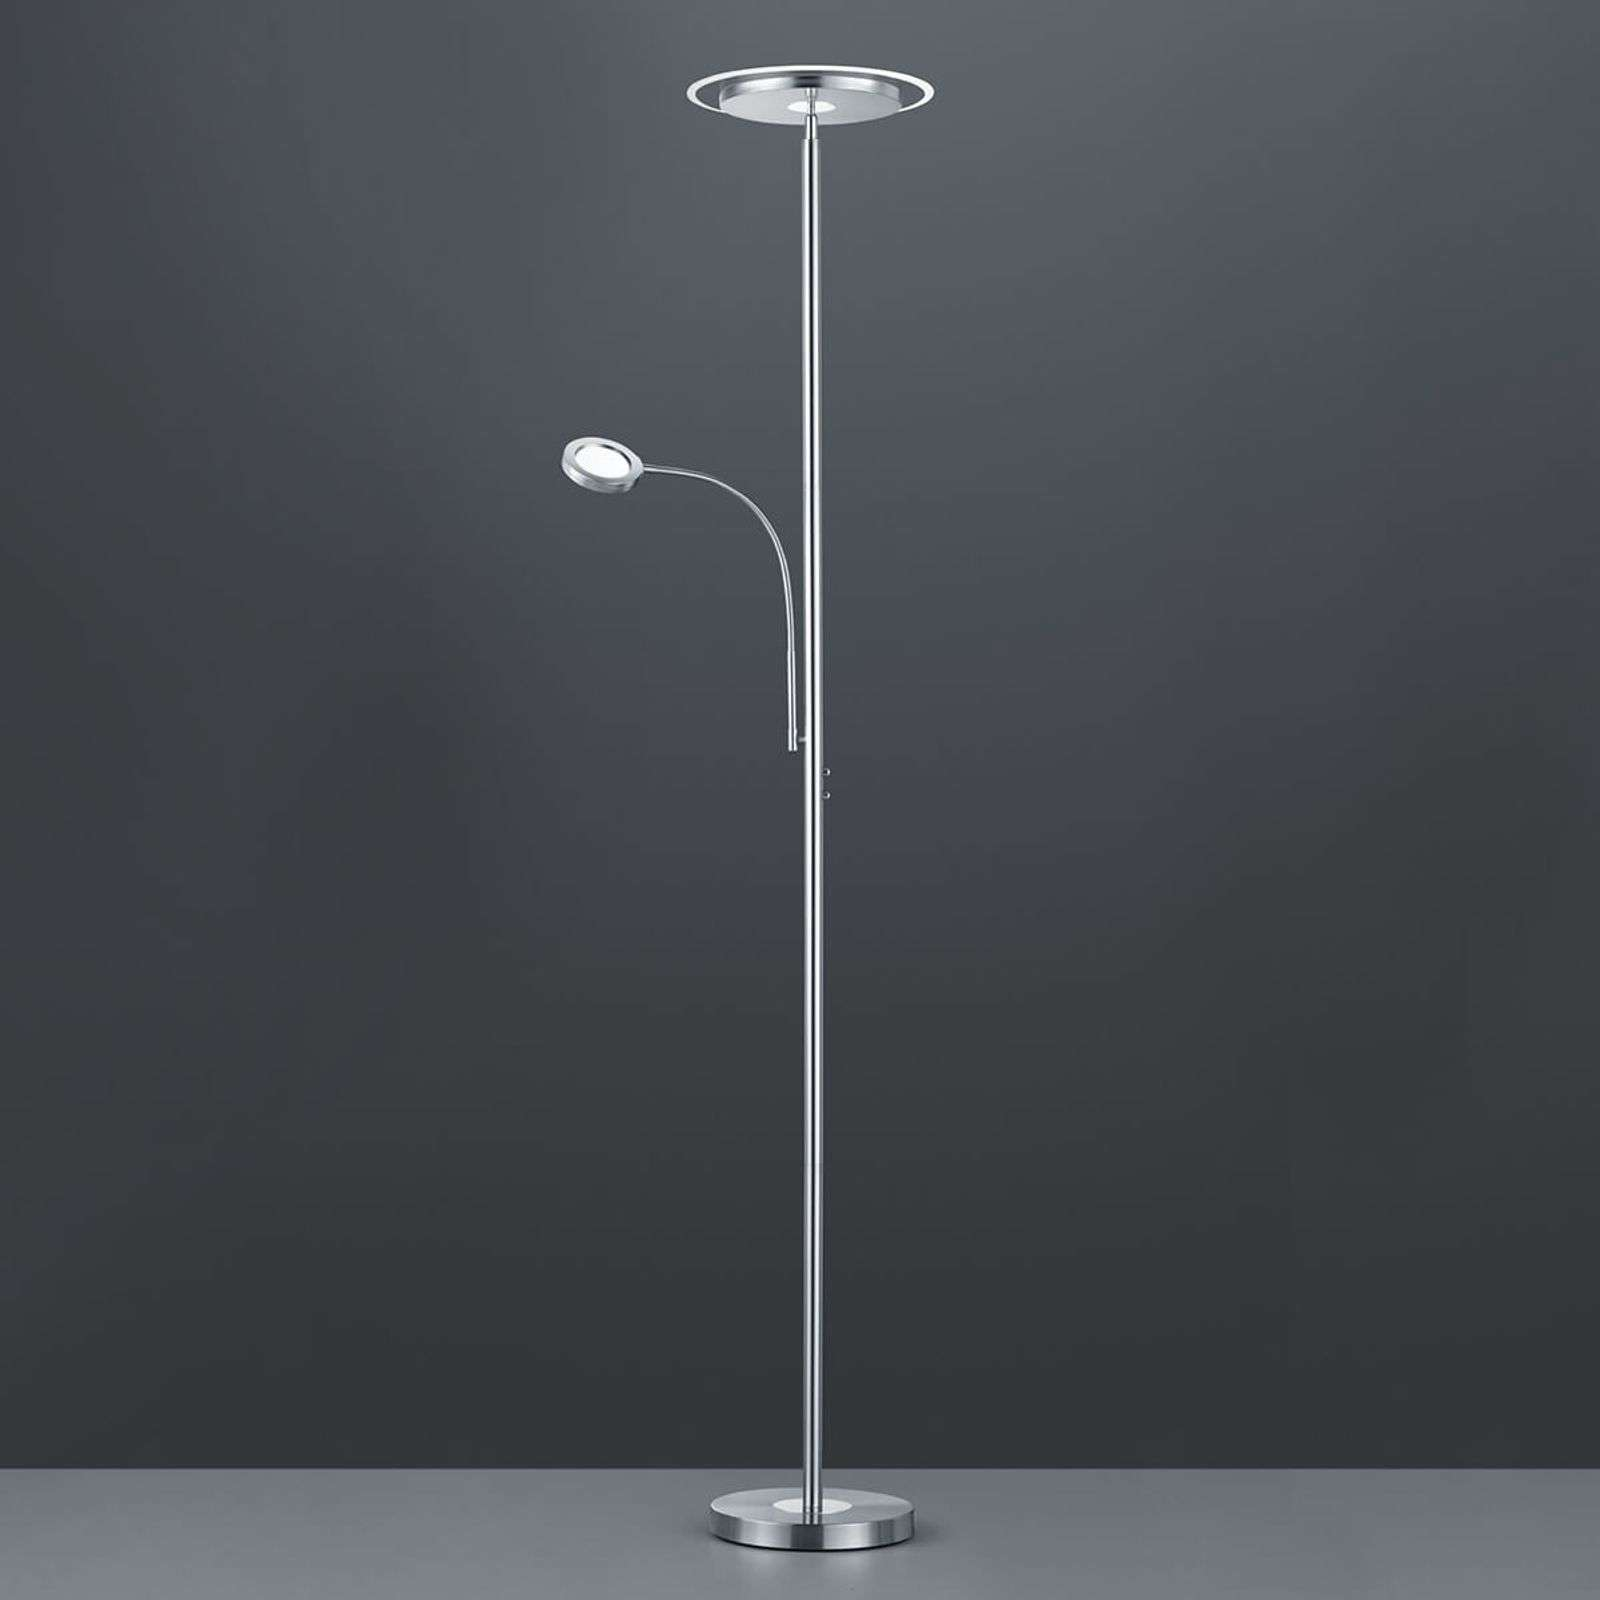 Lampadaire à éclairage indirect LED Ackbar rond